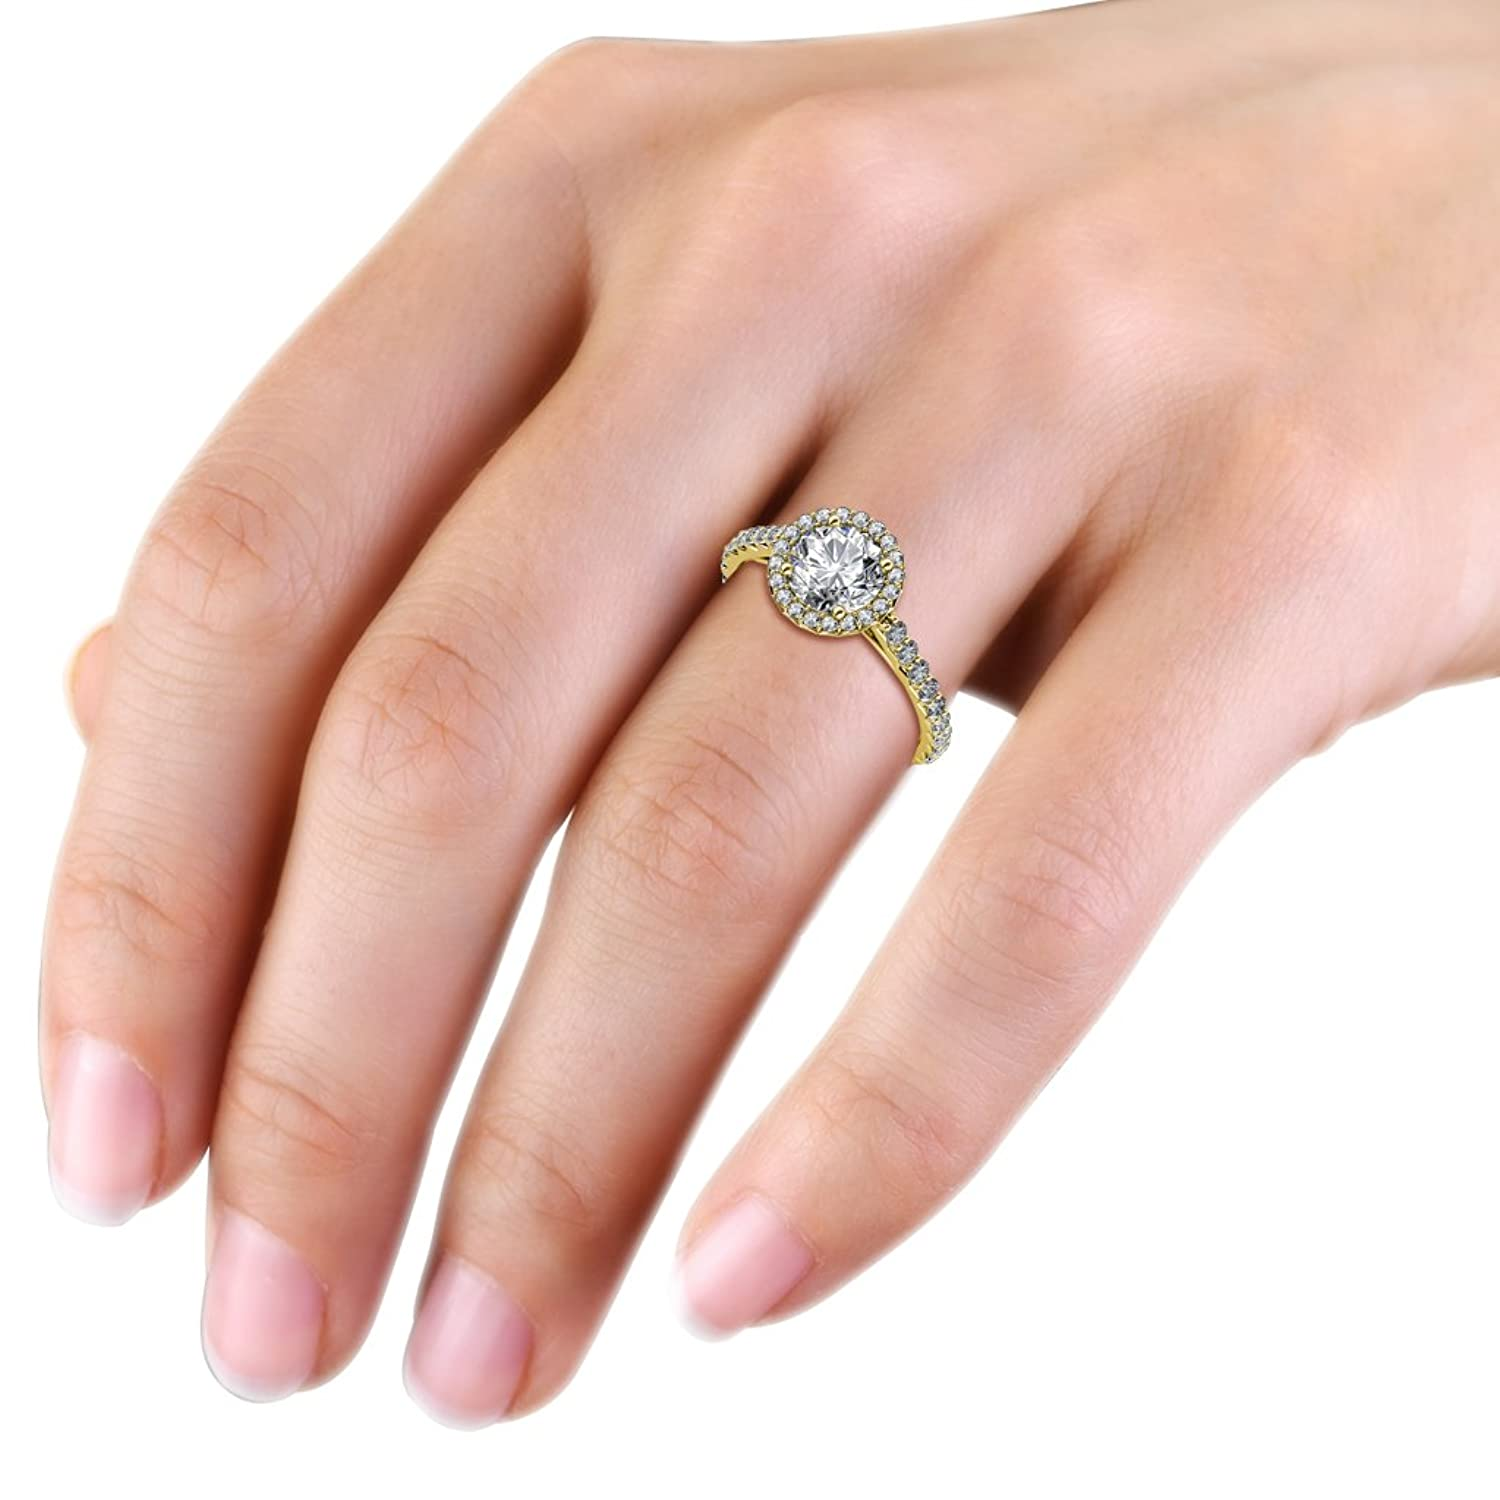 Diamond Halo Engagement Ring 1.12 ct tw in 14K Yellow Gold | Amazon.com